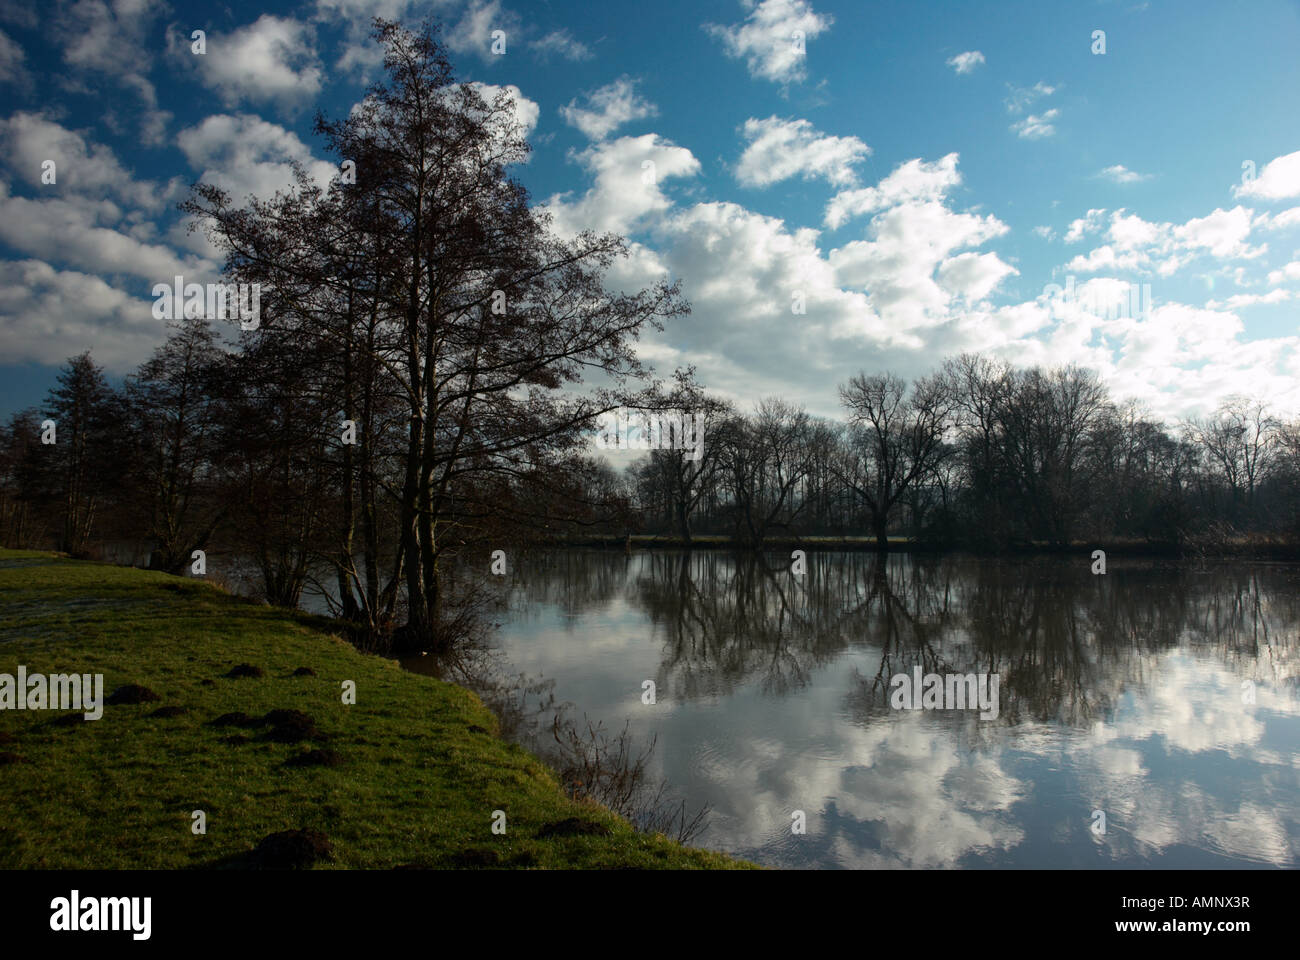 A beautiful scene of the River Thames at Medmenham, Buckinghamshire on a sunny December day. Stock Photo